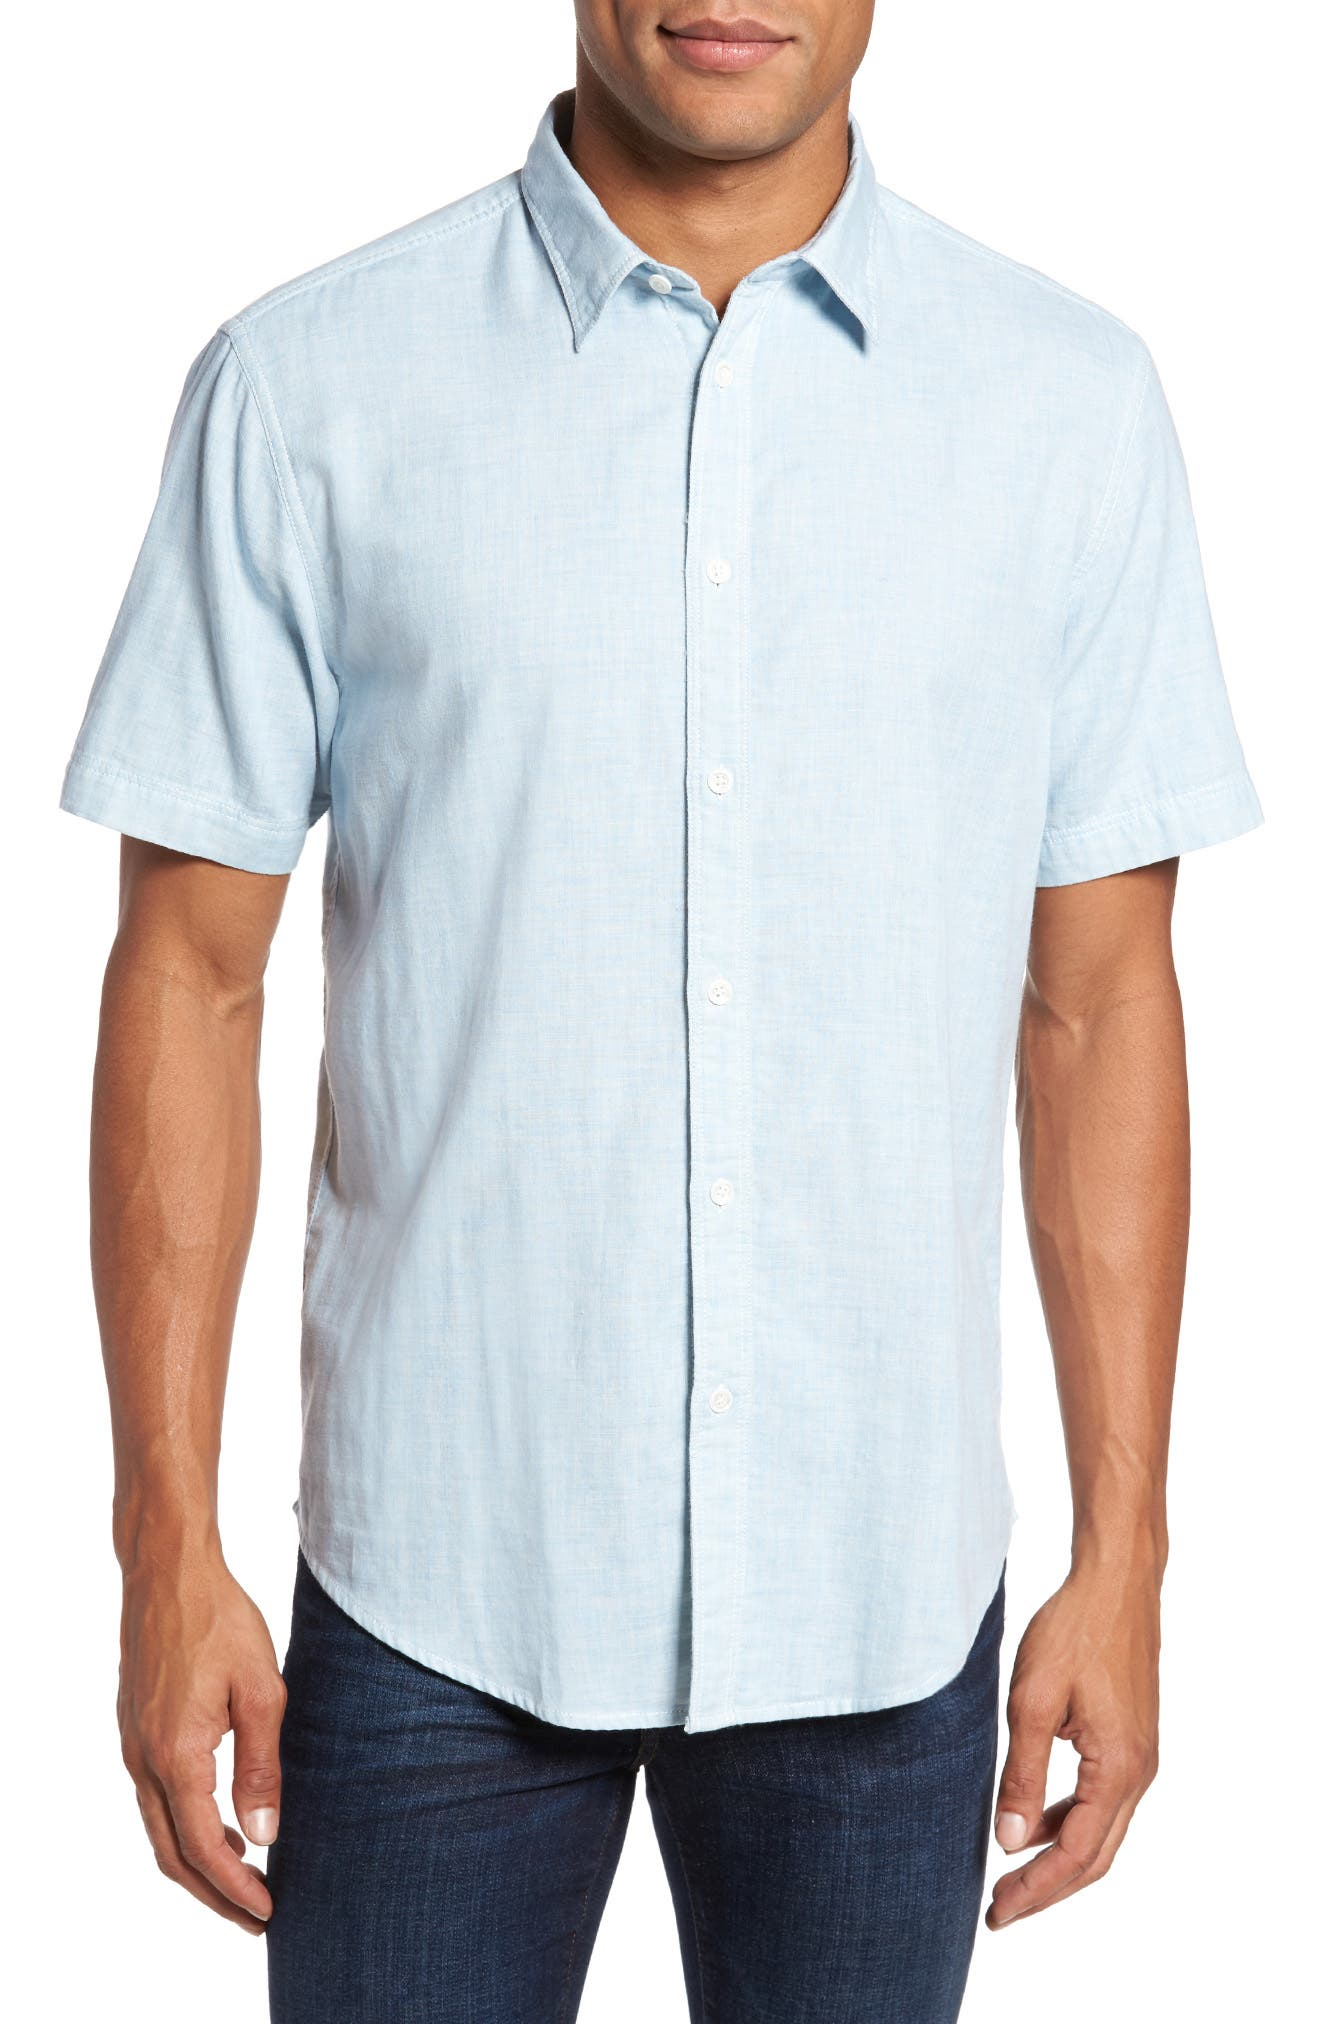 Alternate Image 1 Selected - Coastaoro Encinitas Regular Fit Sport Shirt